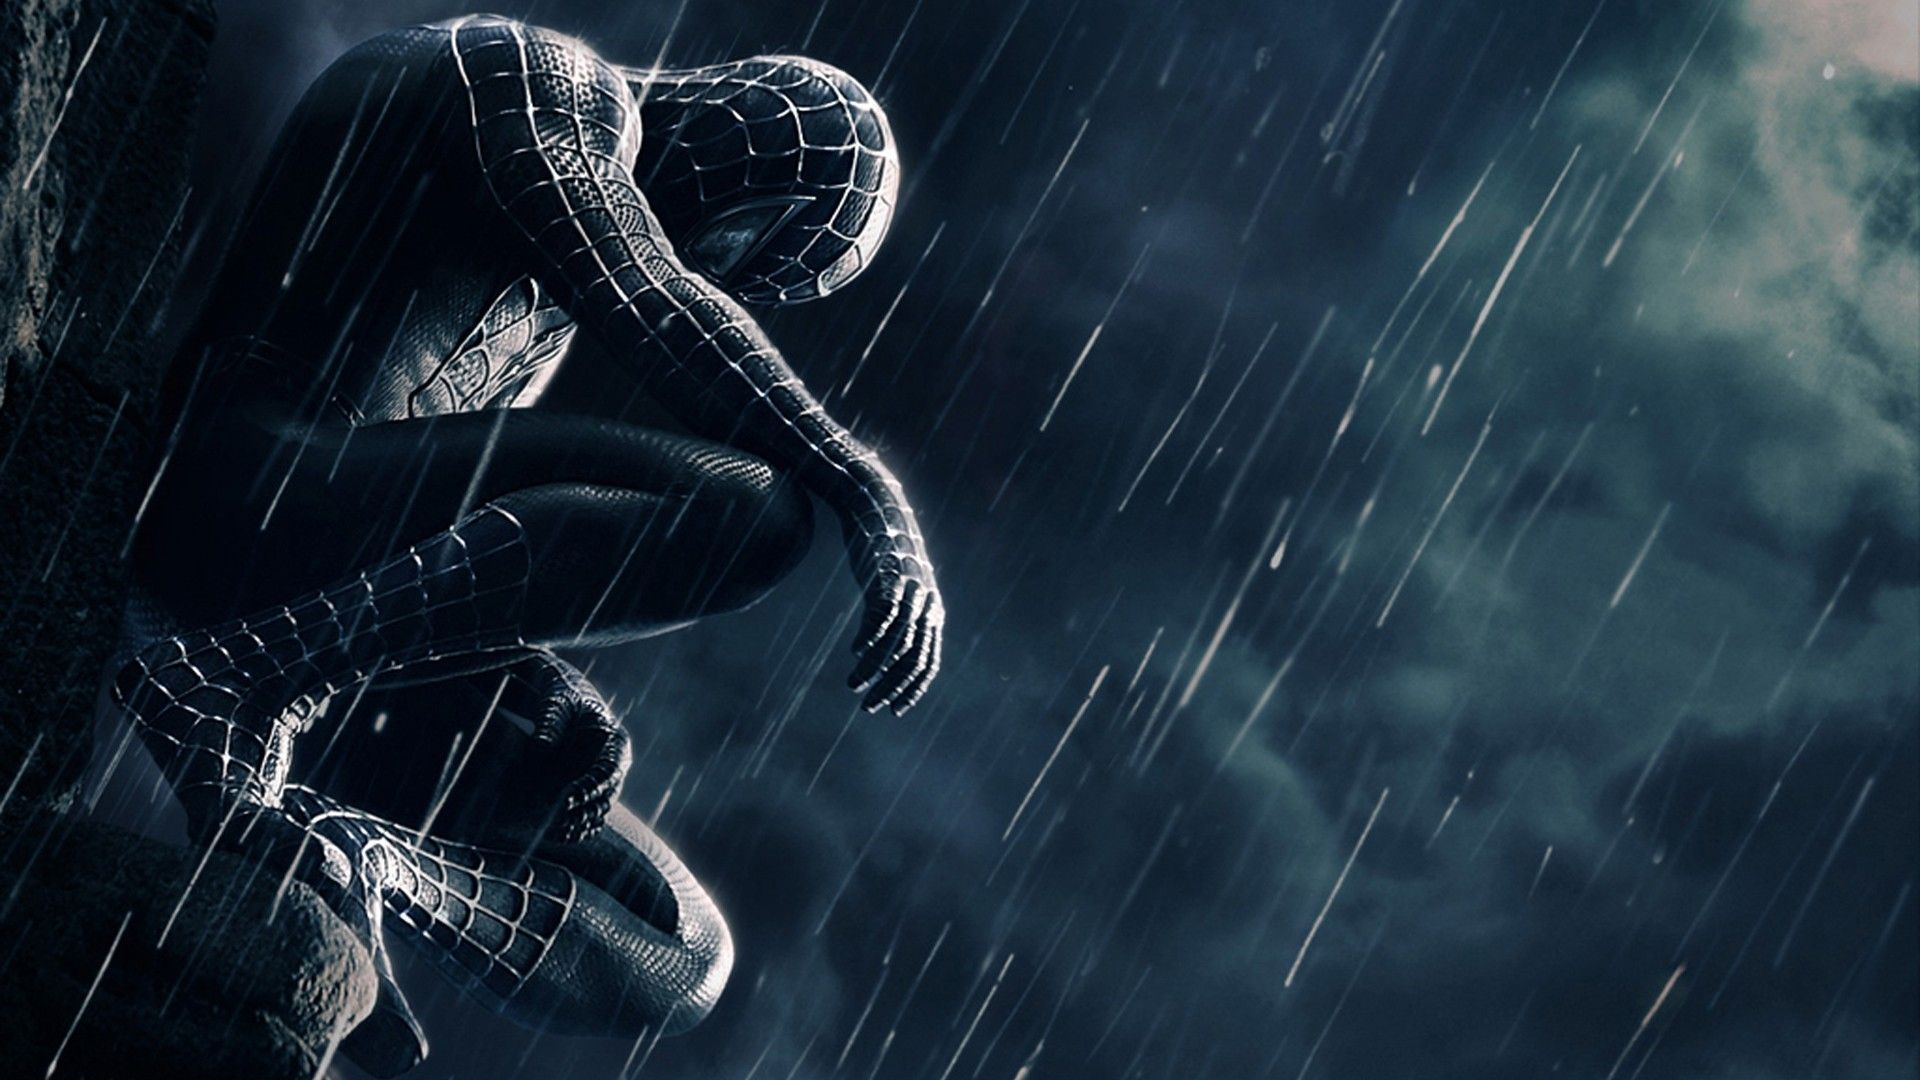 Spiderman Full HD Impressive Wallpaper Free  Download Spiderman 1920x1080